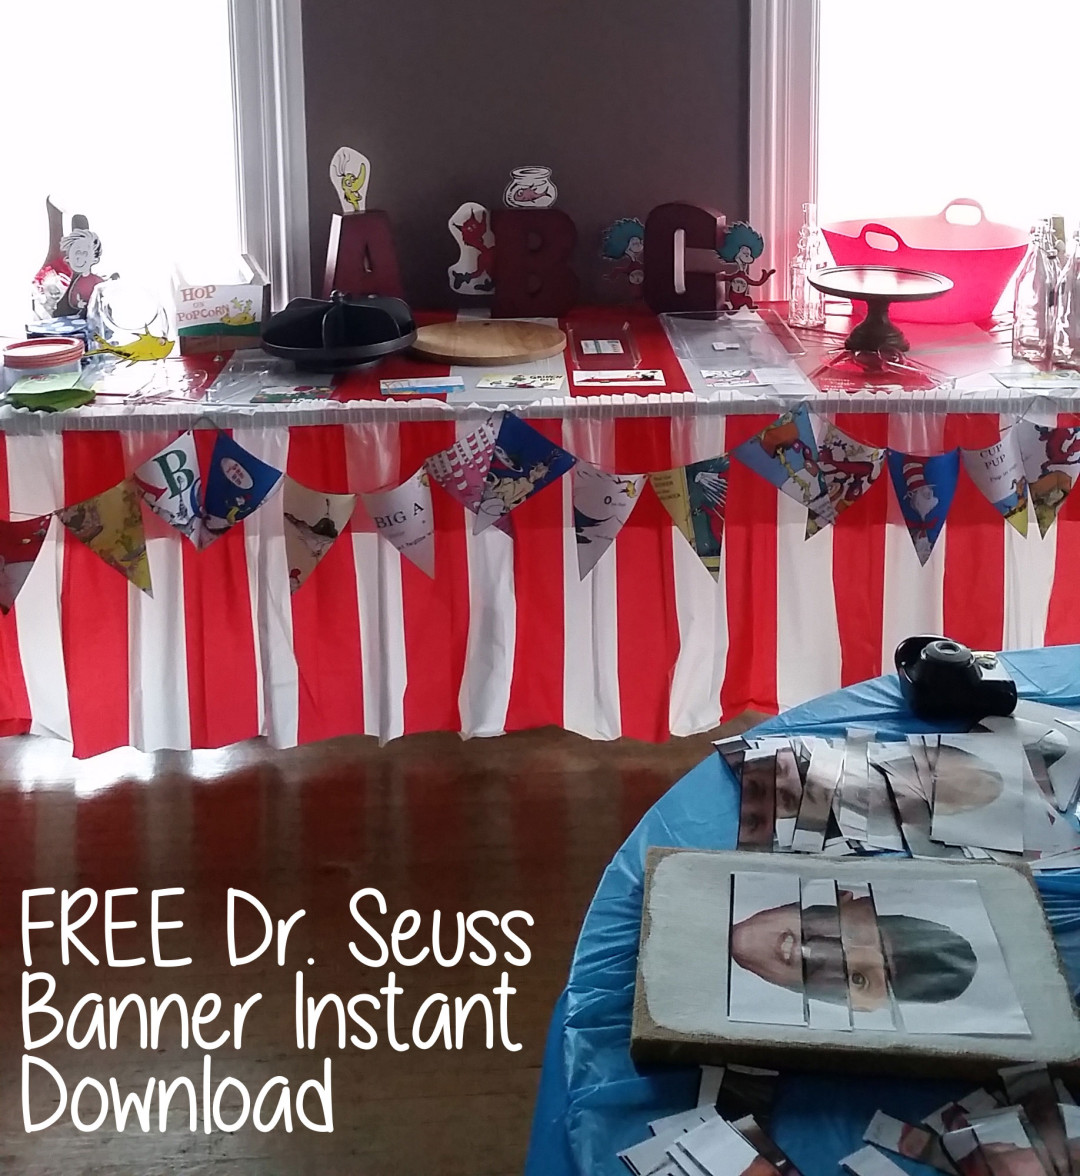 Dr. Seuss Free Banner Instant Download